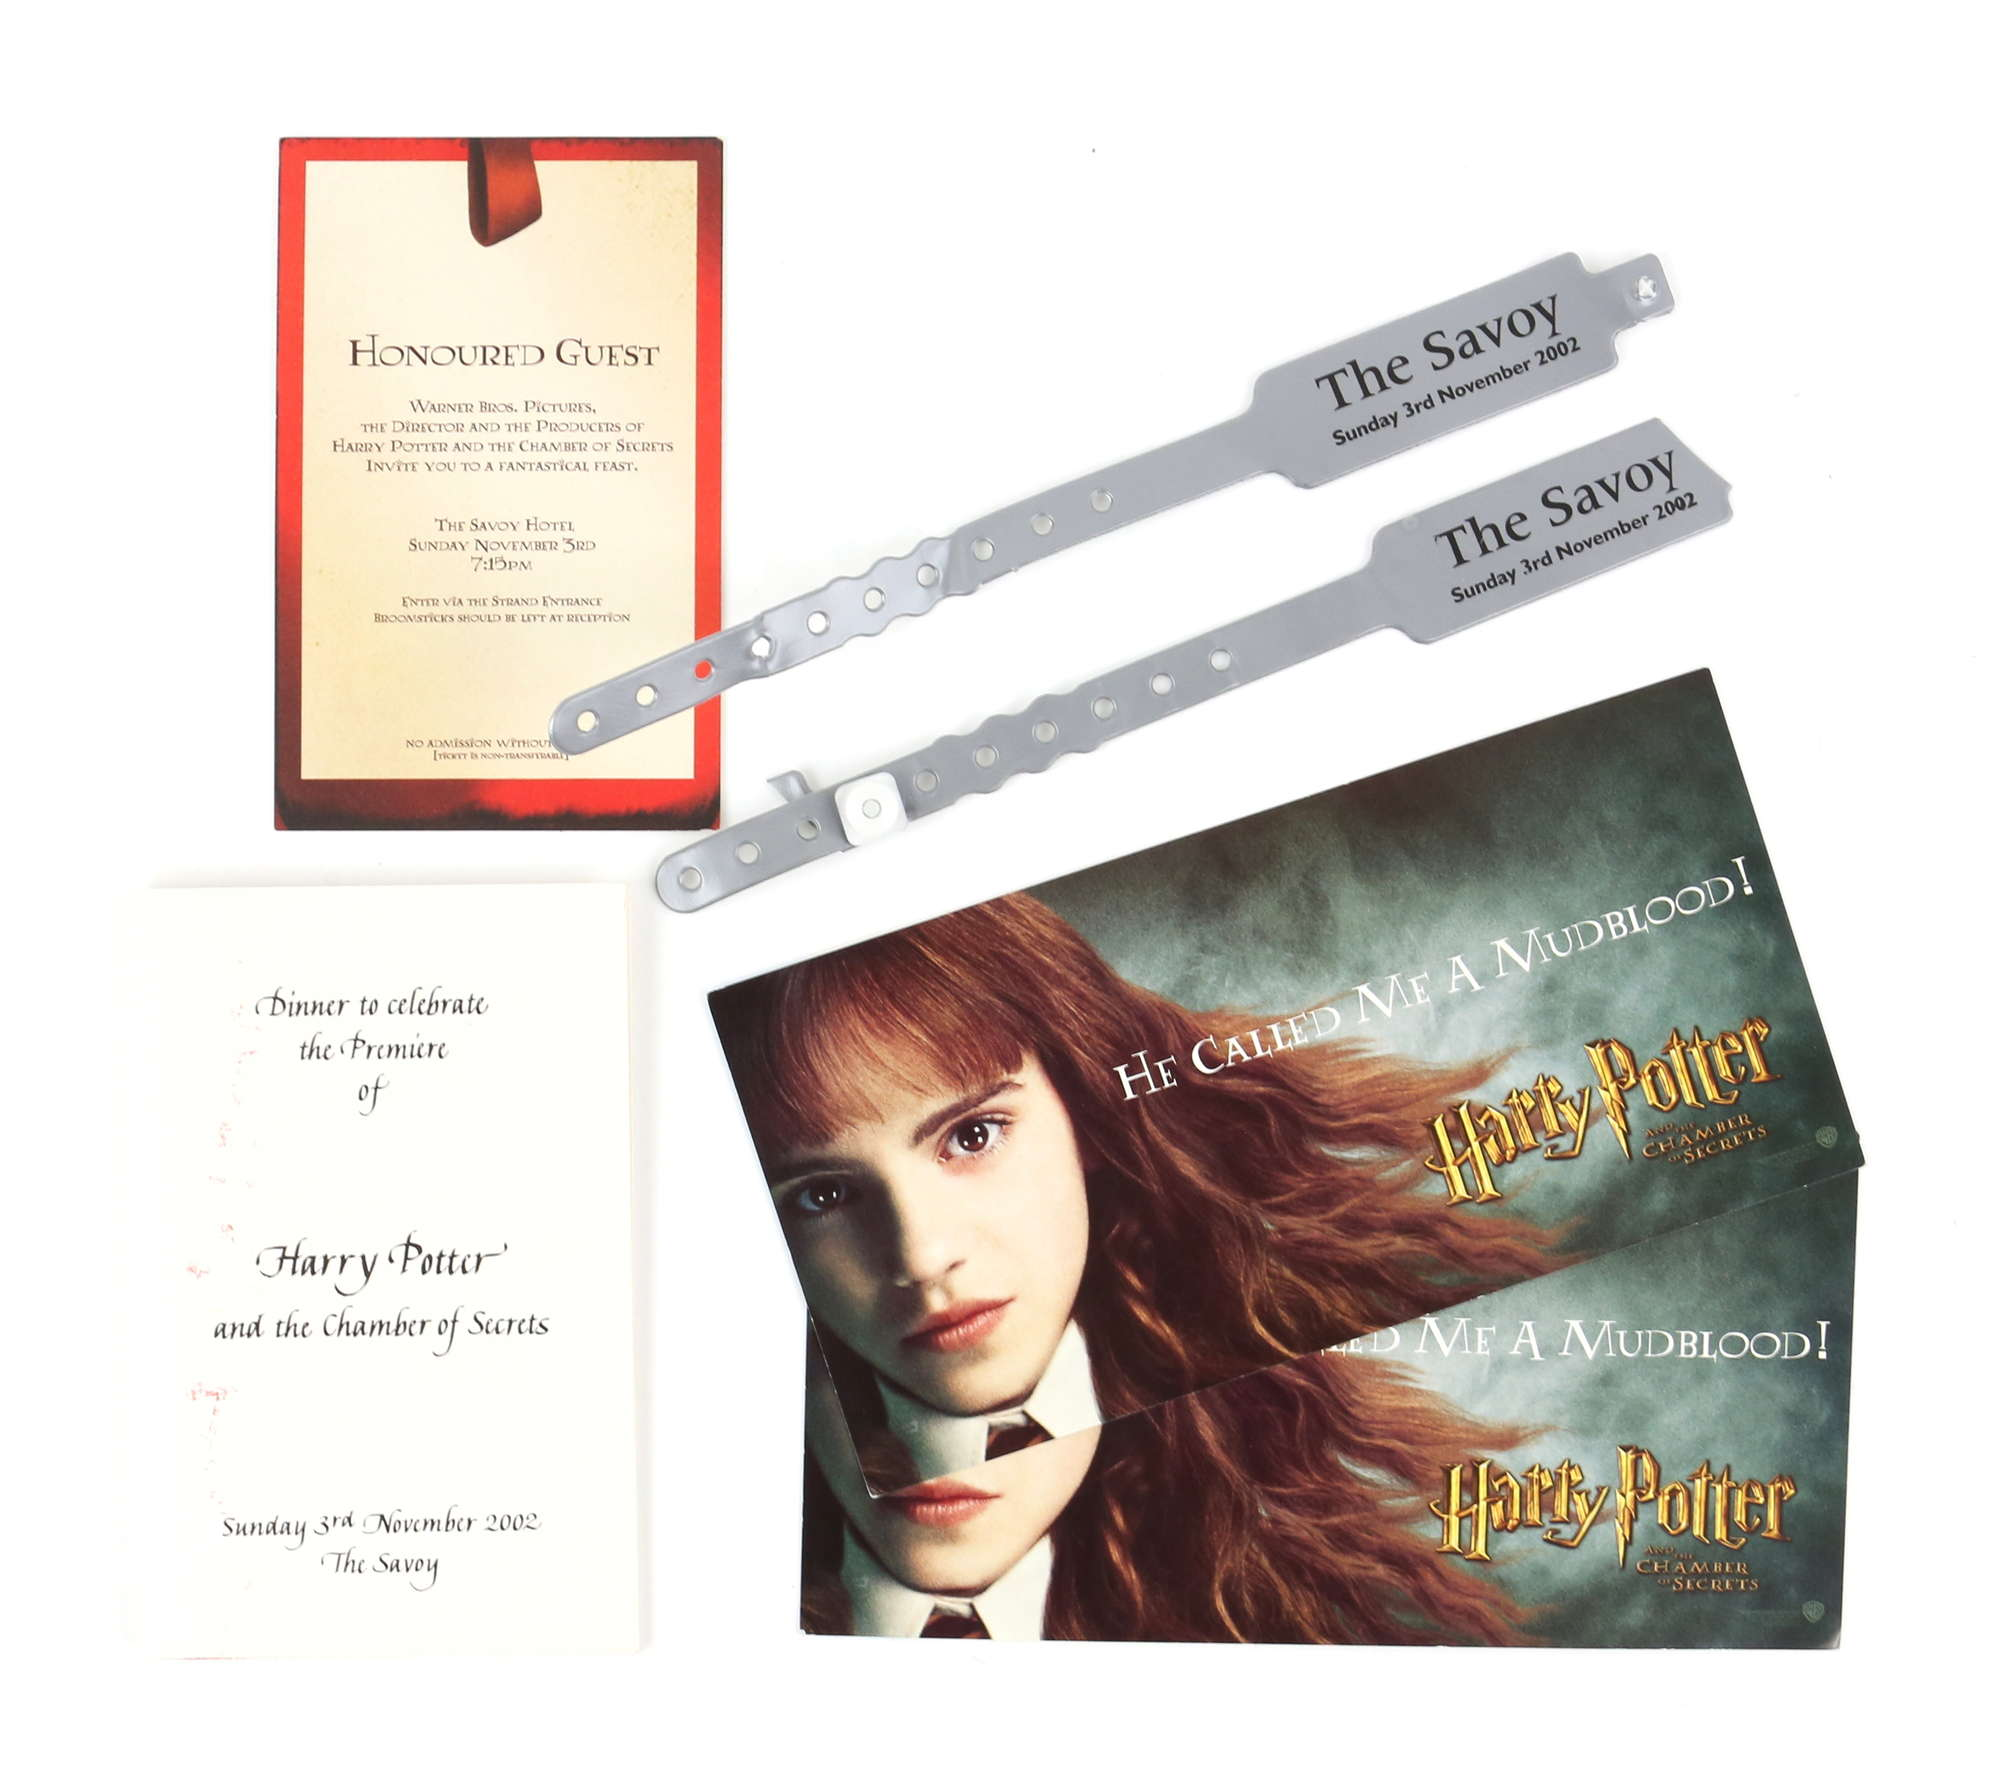 """The crew member is also selling some event memorabilia, including two tickets to the premiere of """"Harry Potter and the Chamber of Secrets."""""""